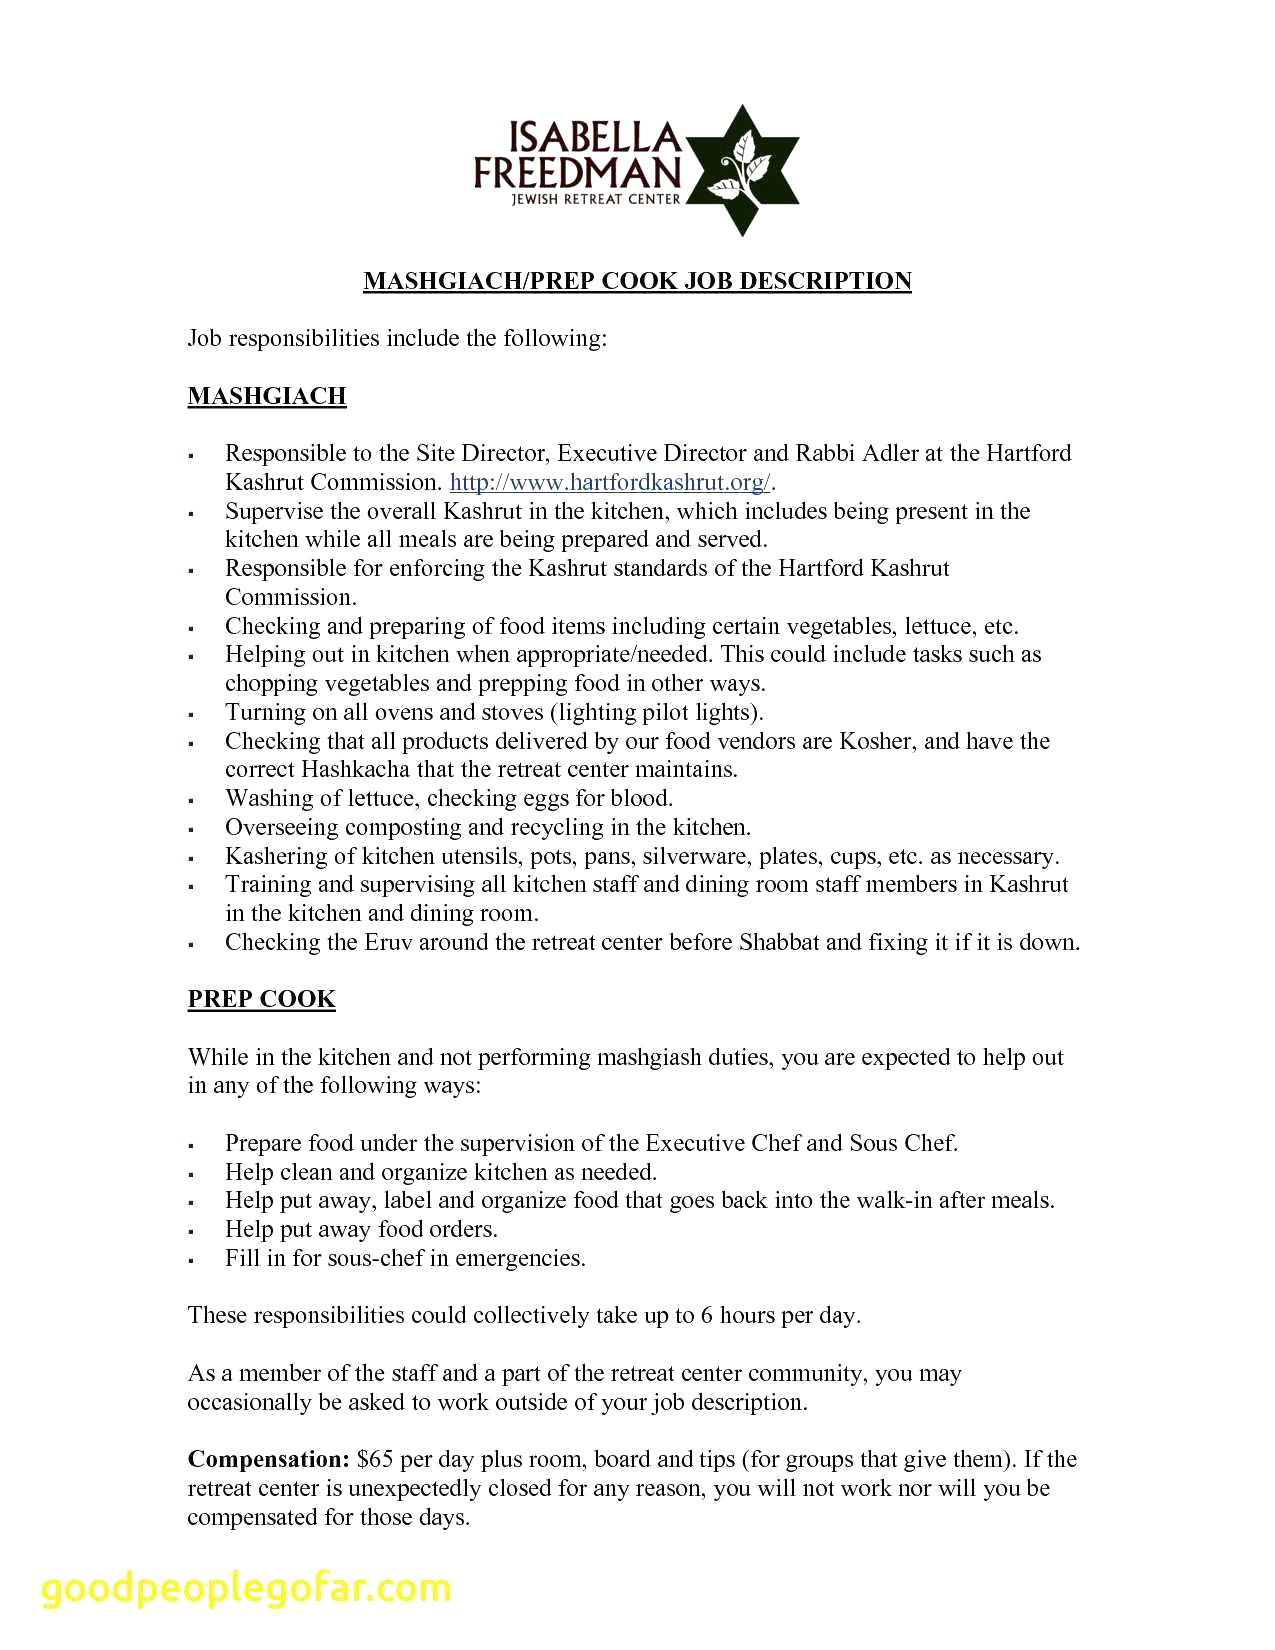 sales representative responsibilities resume Collection-How to Write A Good Job Resume From Job Letter 0d Related Post 13-q